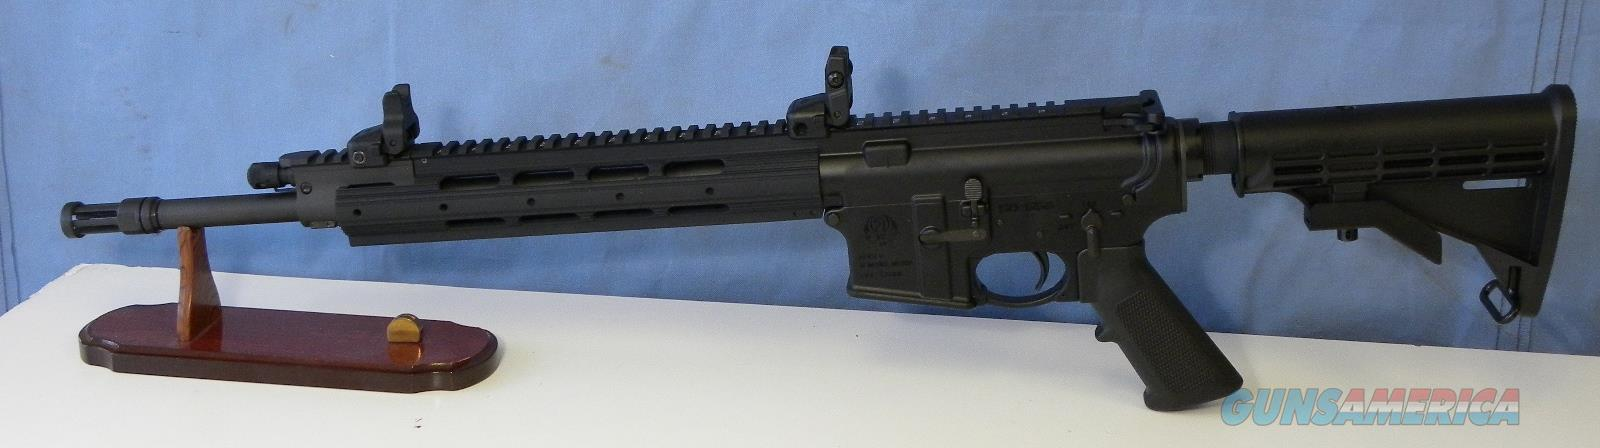 Ruger SR-556  5912  Guns > Rifles > Ruger Rifles > SR Series